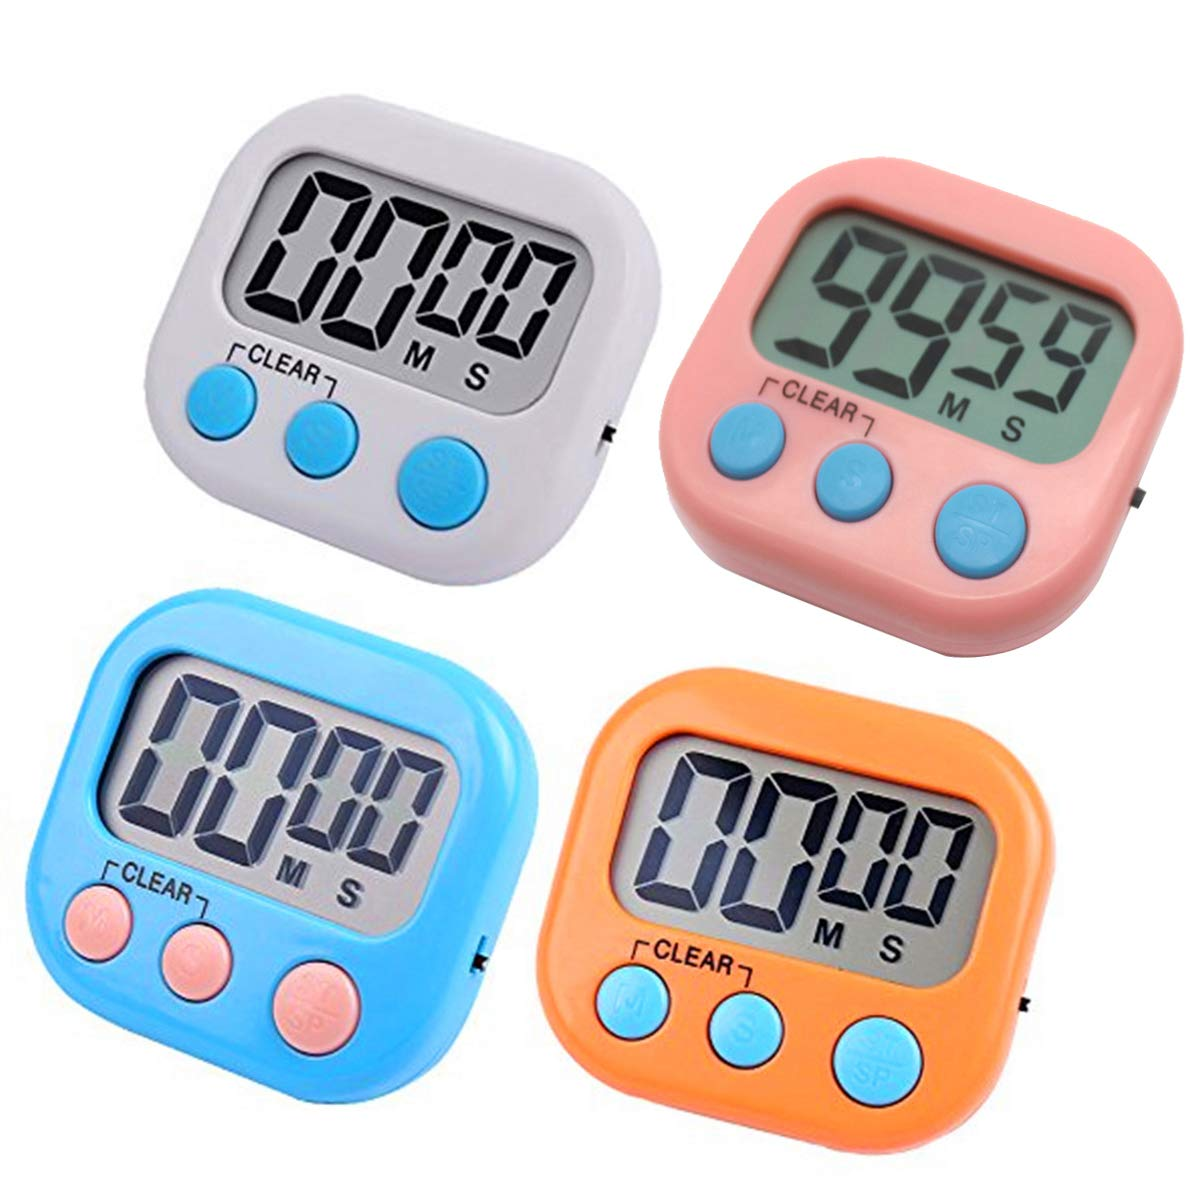 RUNTIM Digital Kitchen Timer, Big Display Screen, Loud Alarm, Strong Magnetic Backing Stand for Cooking Baking Game Gym Kid Timer, Minute Seconds Count Up Countdown and Simple Operation Timers(4 Pack)